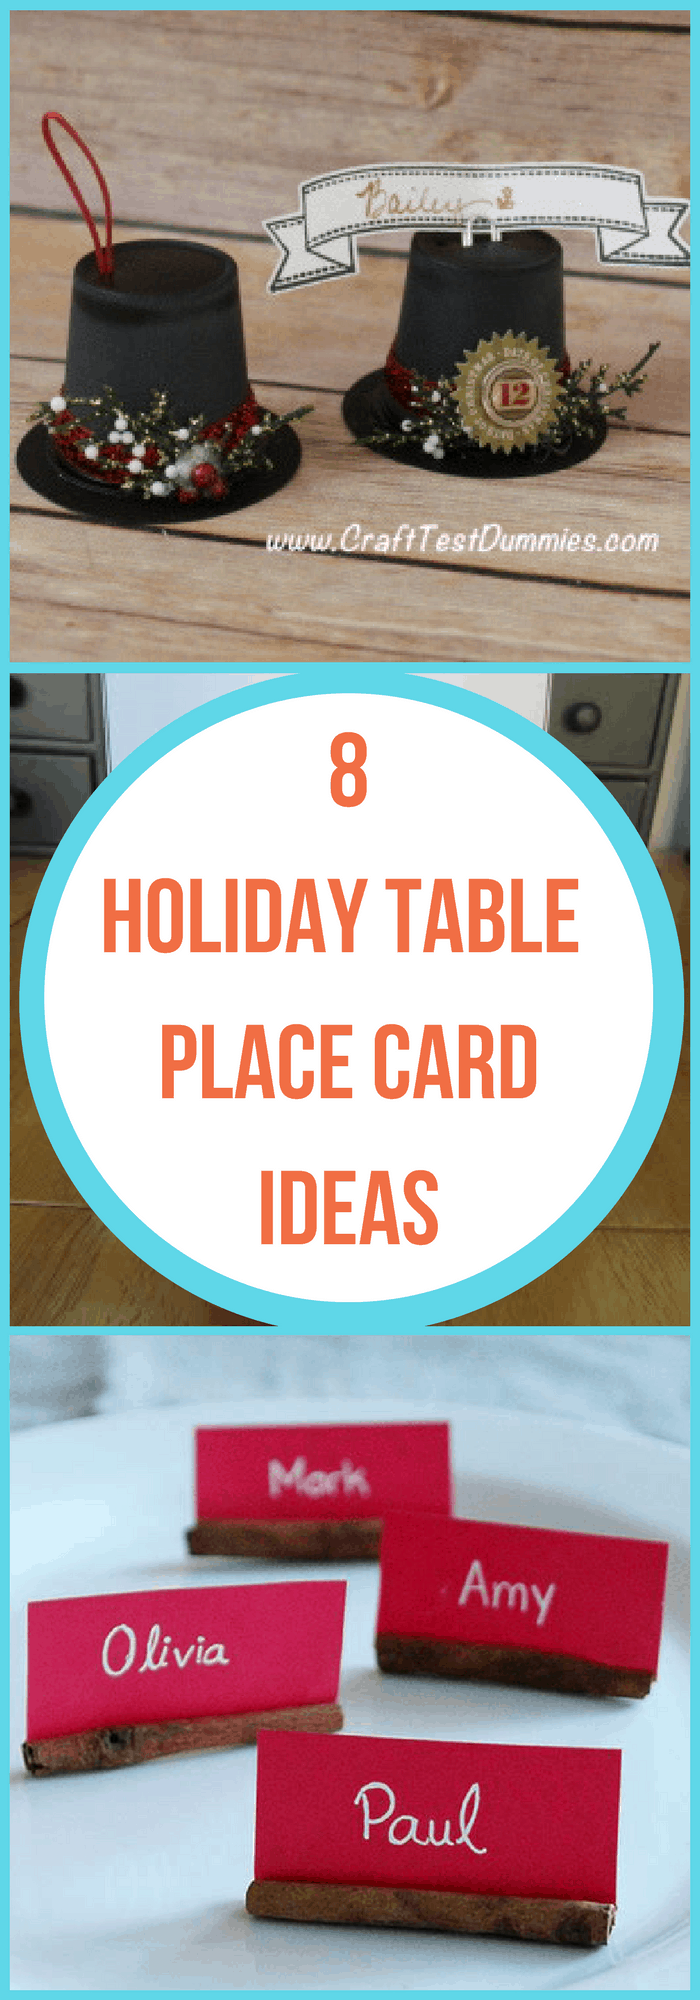 8 Holiday Table Place Card Ideas The Organized Mom